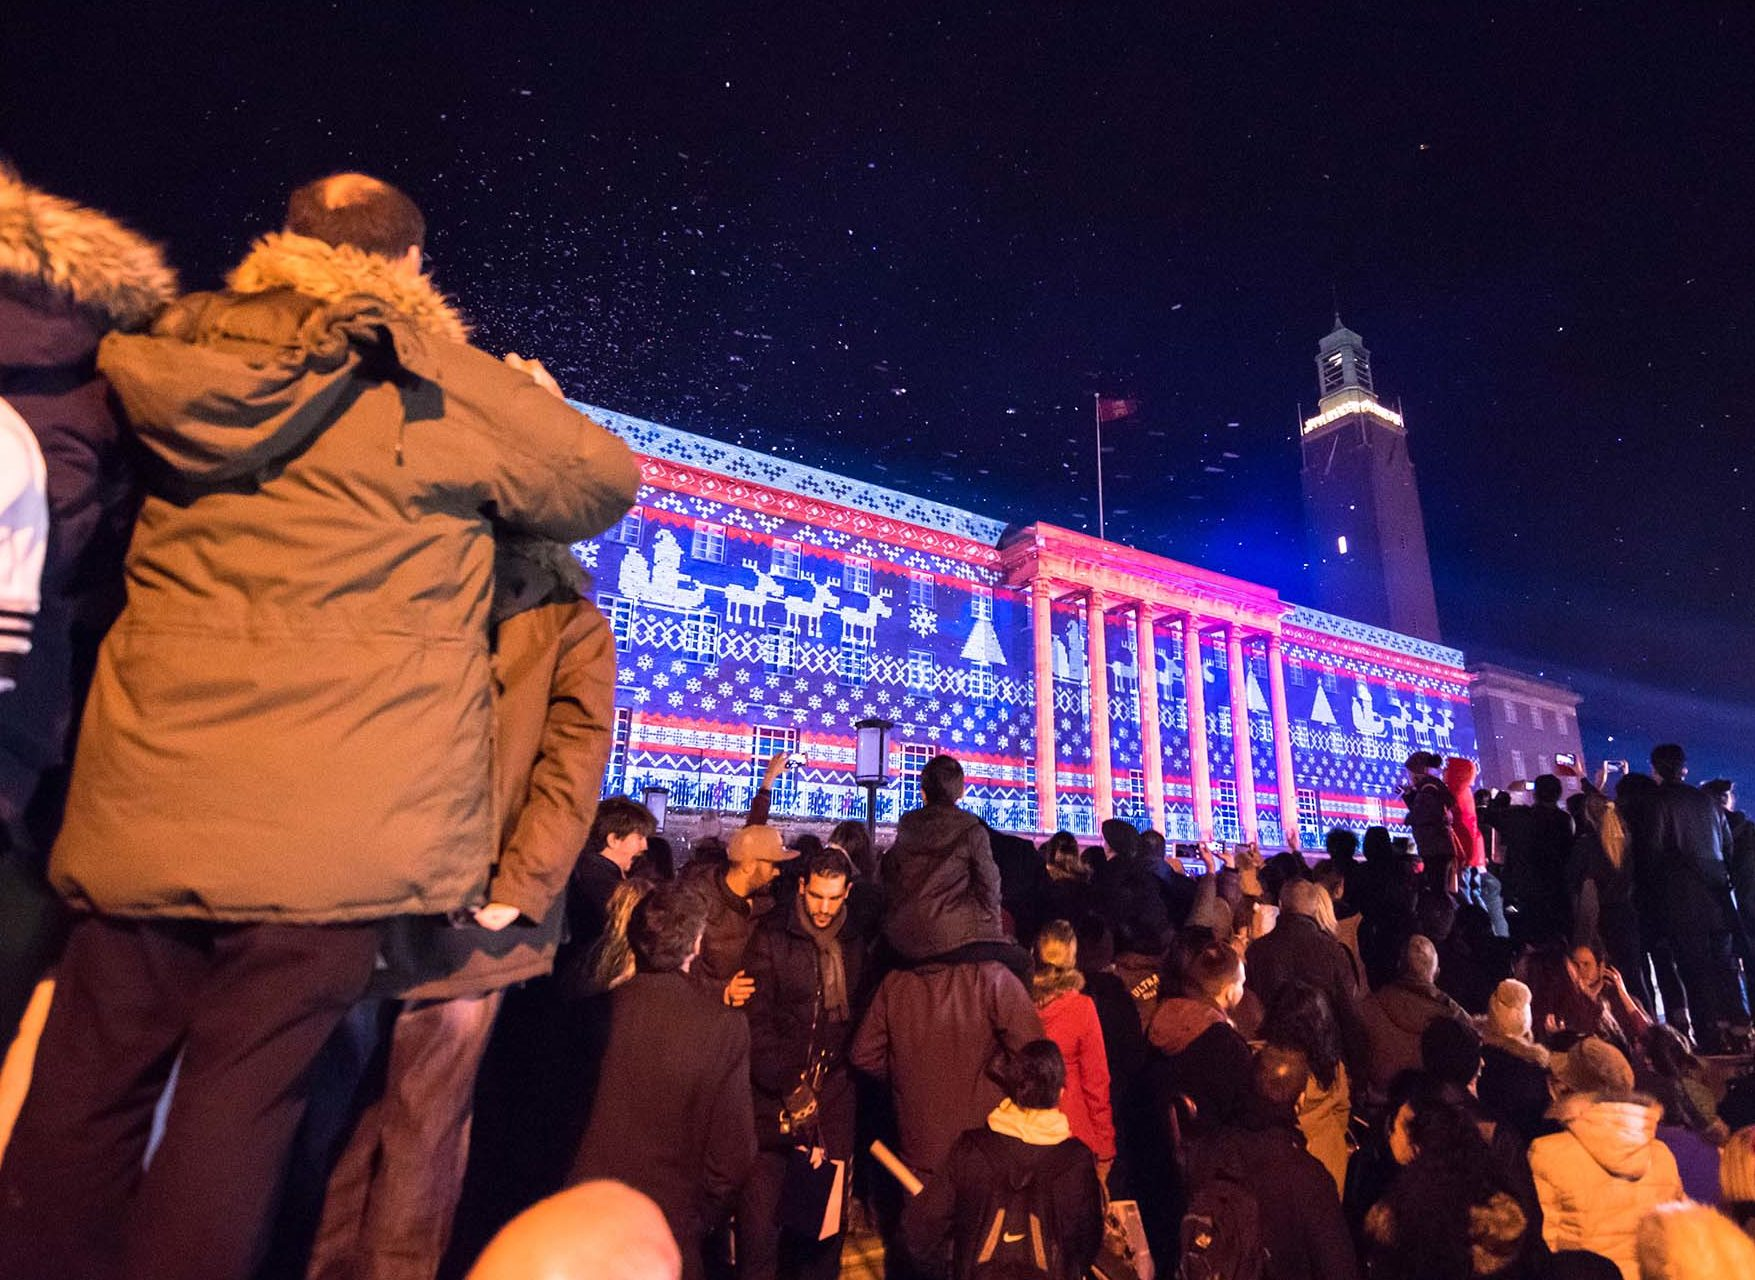 Norwich City Hall Christmas Projections show Live Launch